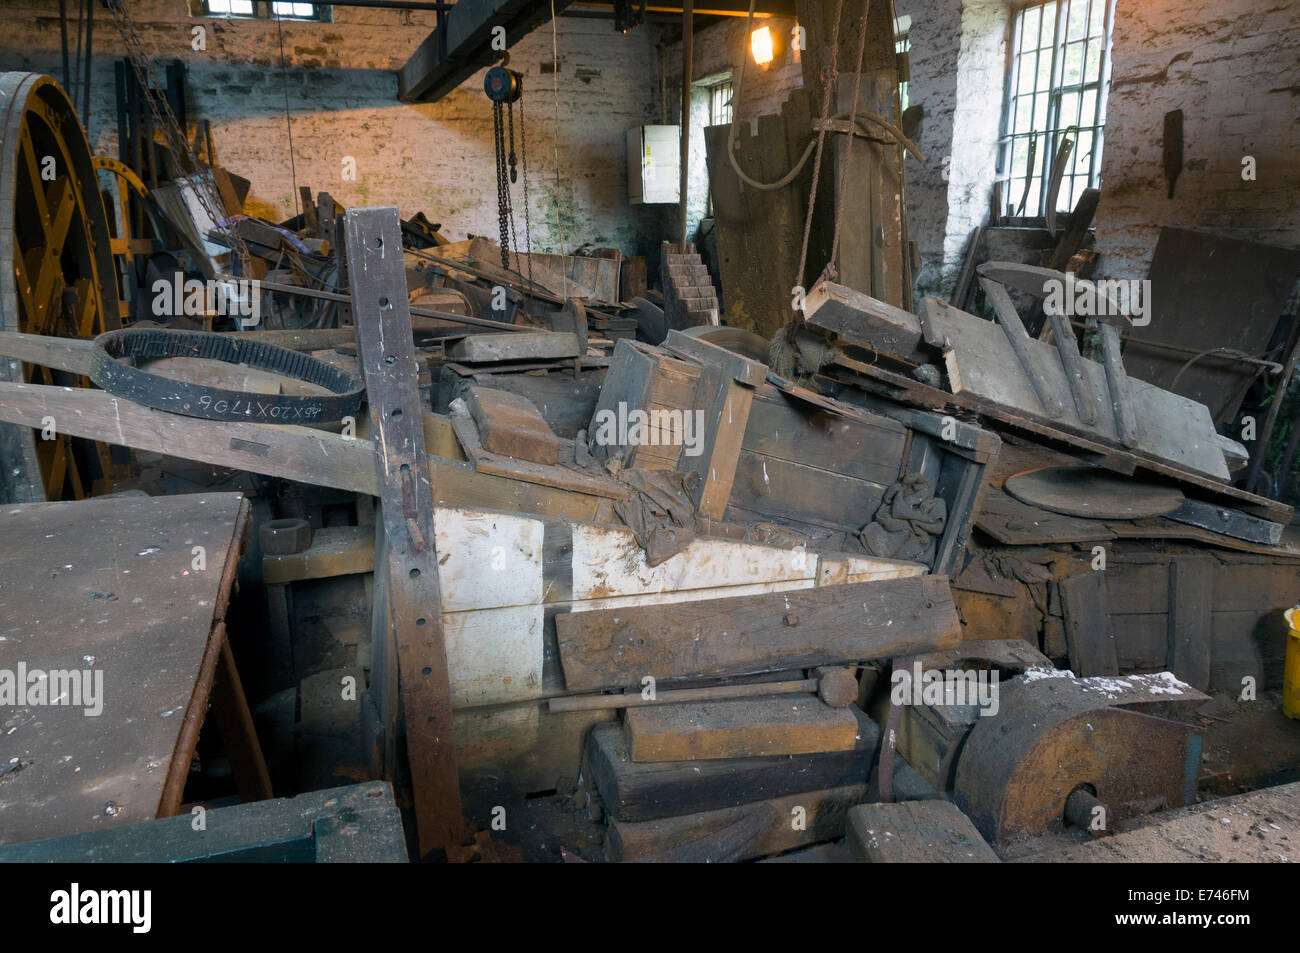 Inside the Grinding Hull at the Abbeydale Industrial Hamlet, Sheffield, Yorkshire, England, UK. - Stock Image